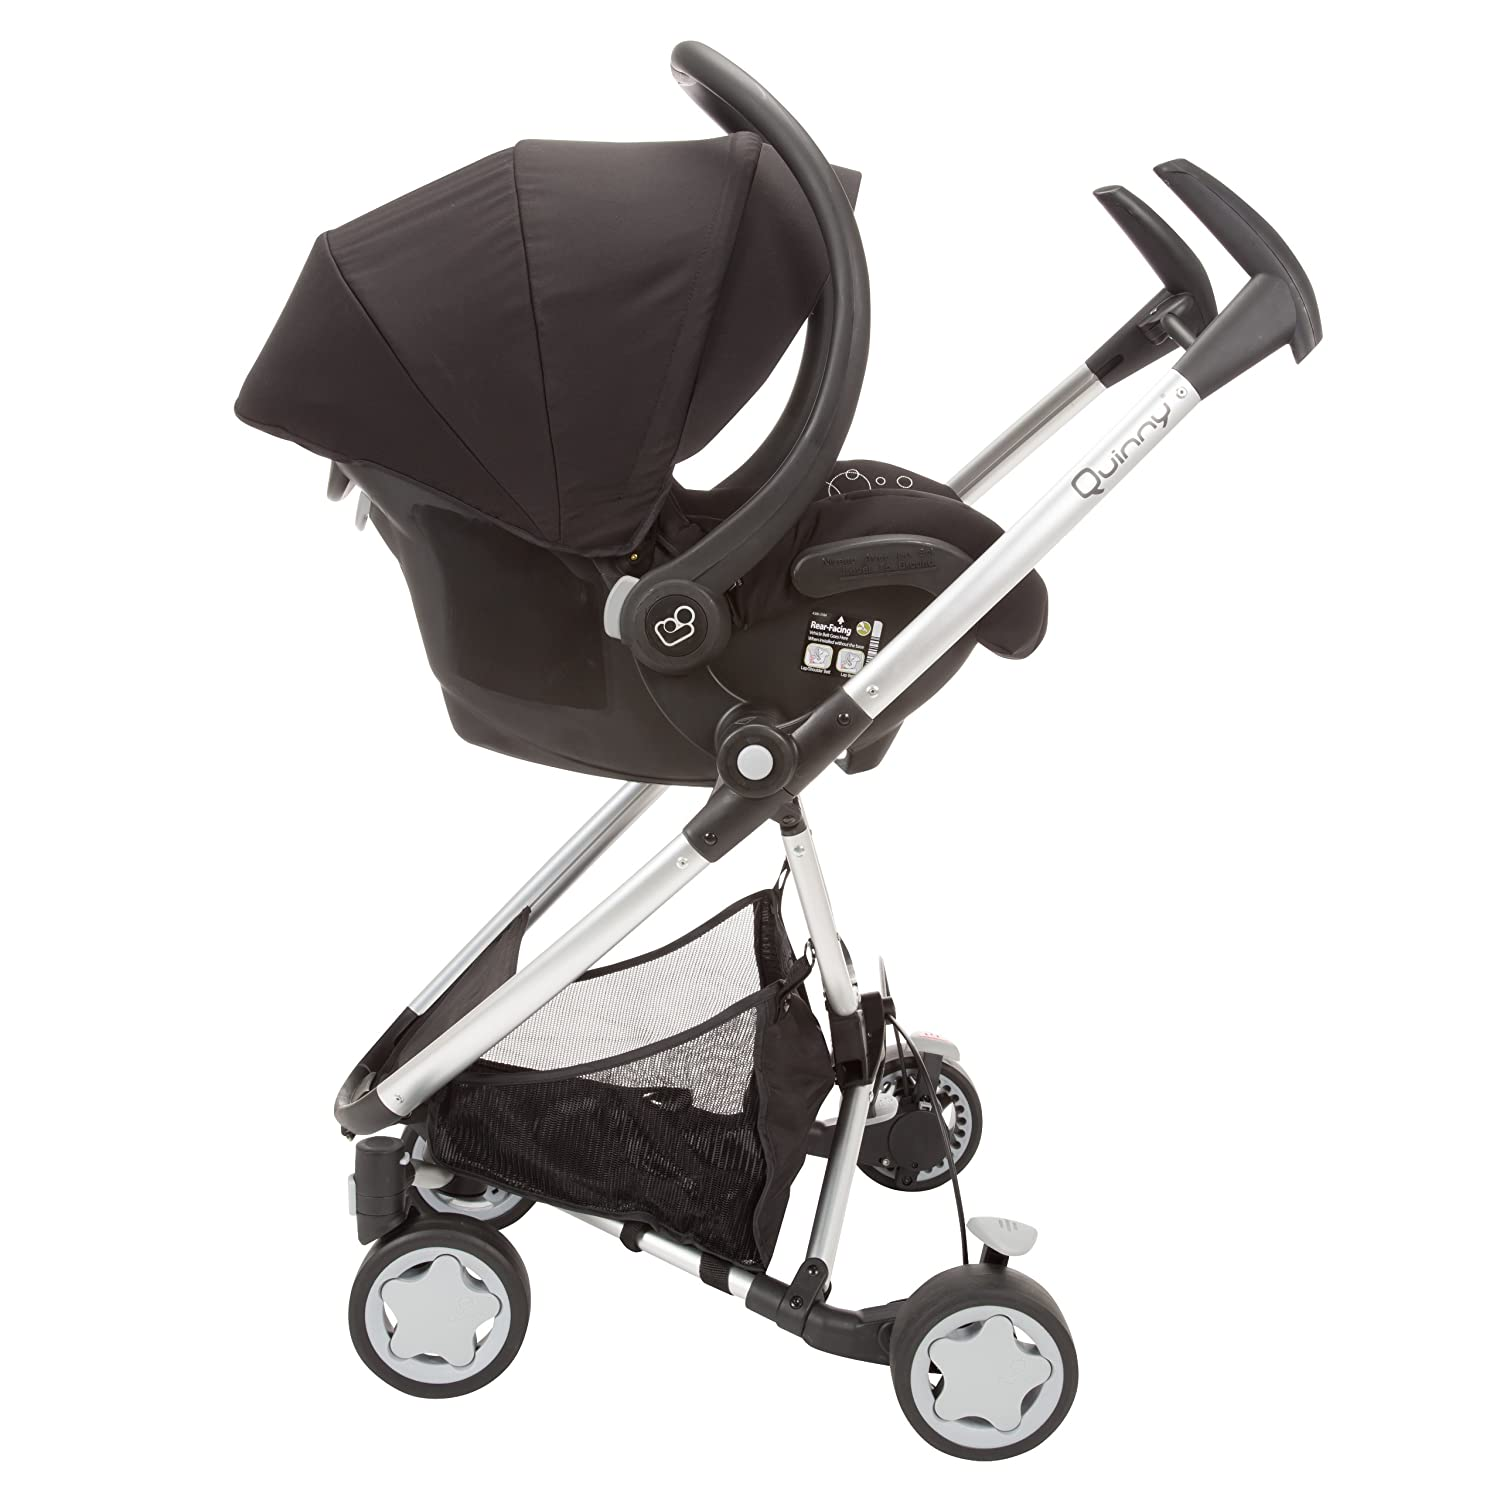 Amazon.com : Quinny Zapp Xtra Stroller with Folding Seat, Pink ...